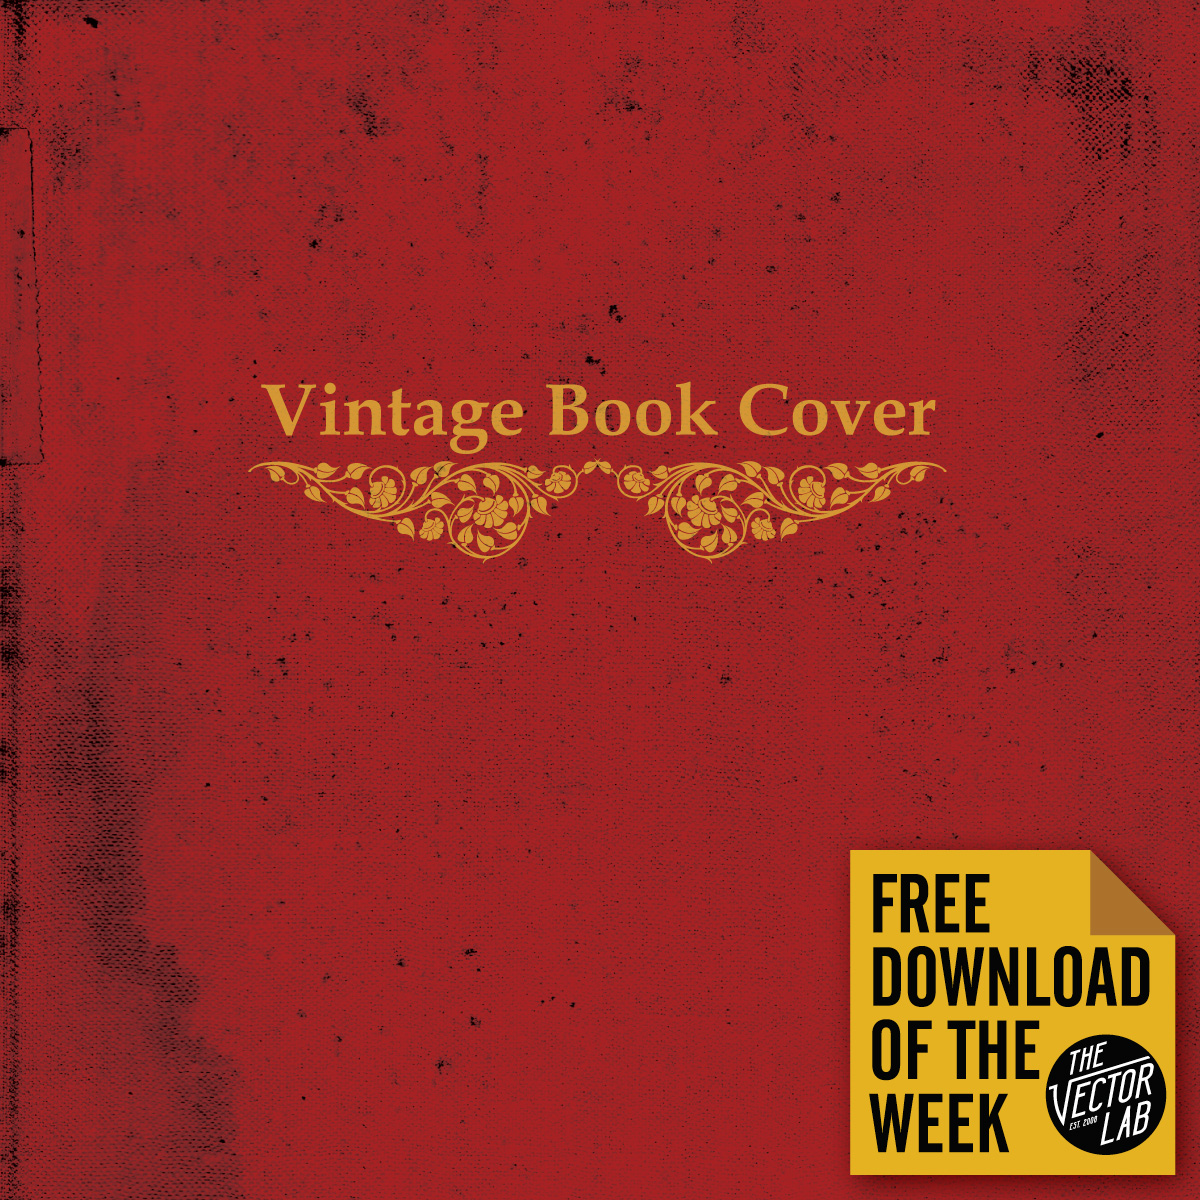 Vintage-Book-Cover-Texture